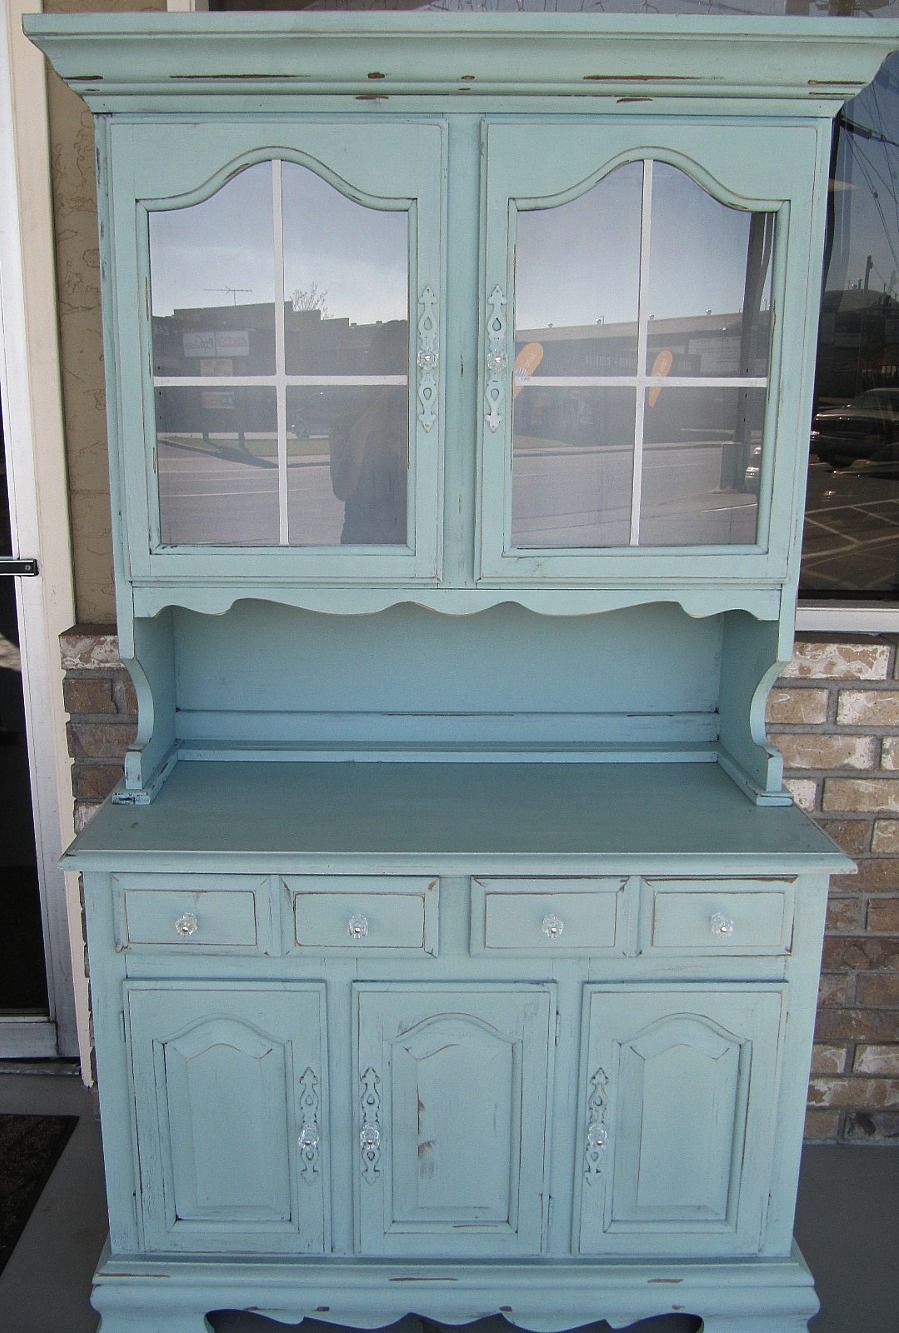 I Want To Refinish A Hutch Love The Duck Egg Blue Color